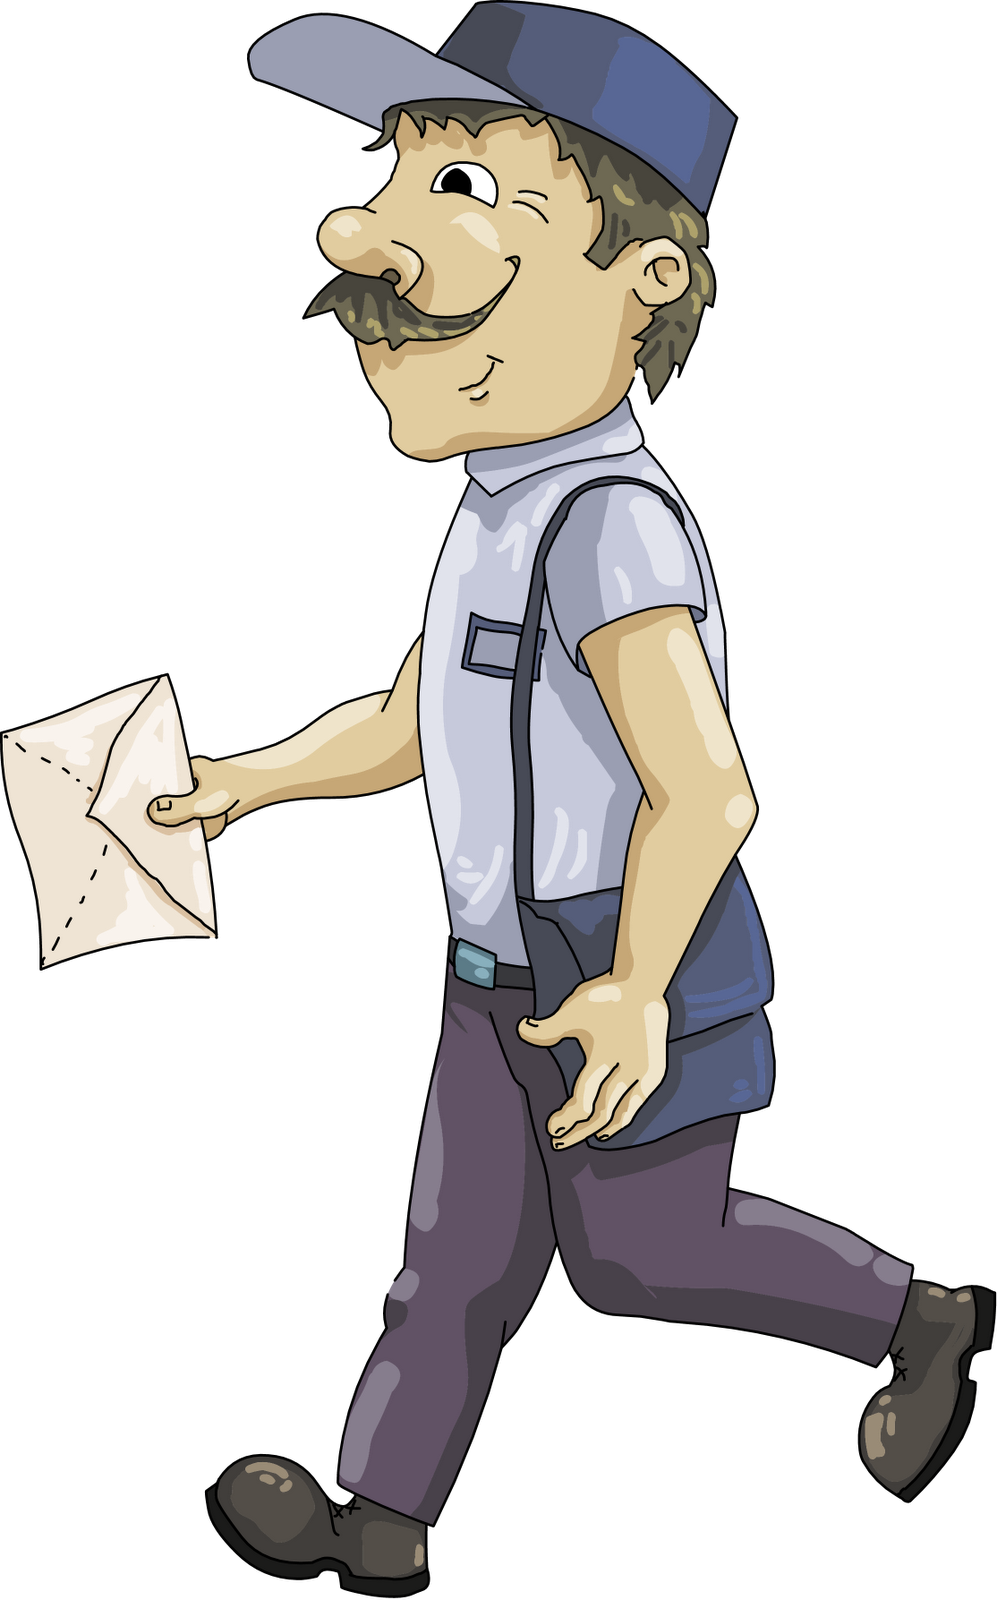 Mailman clipart office mail. Free postal cliparts download